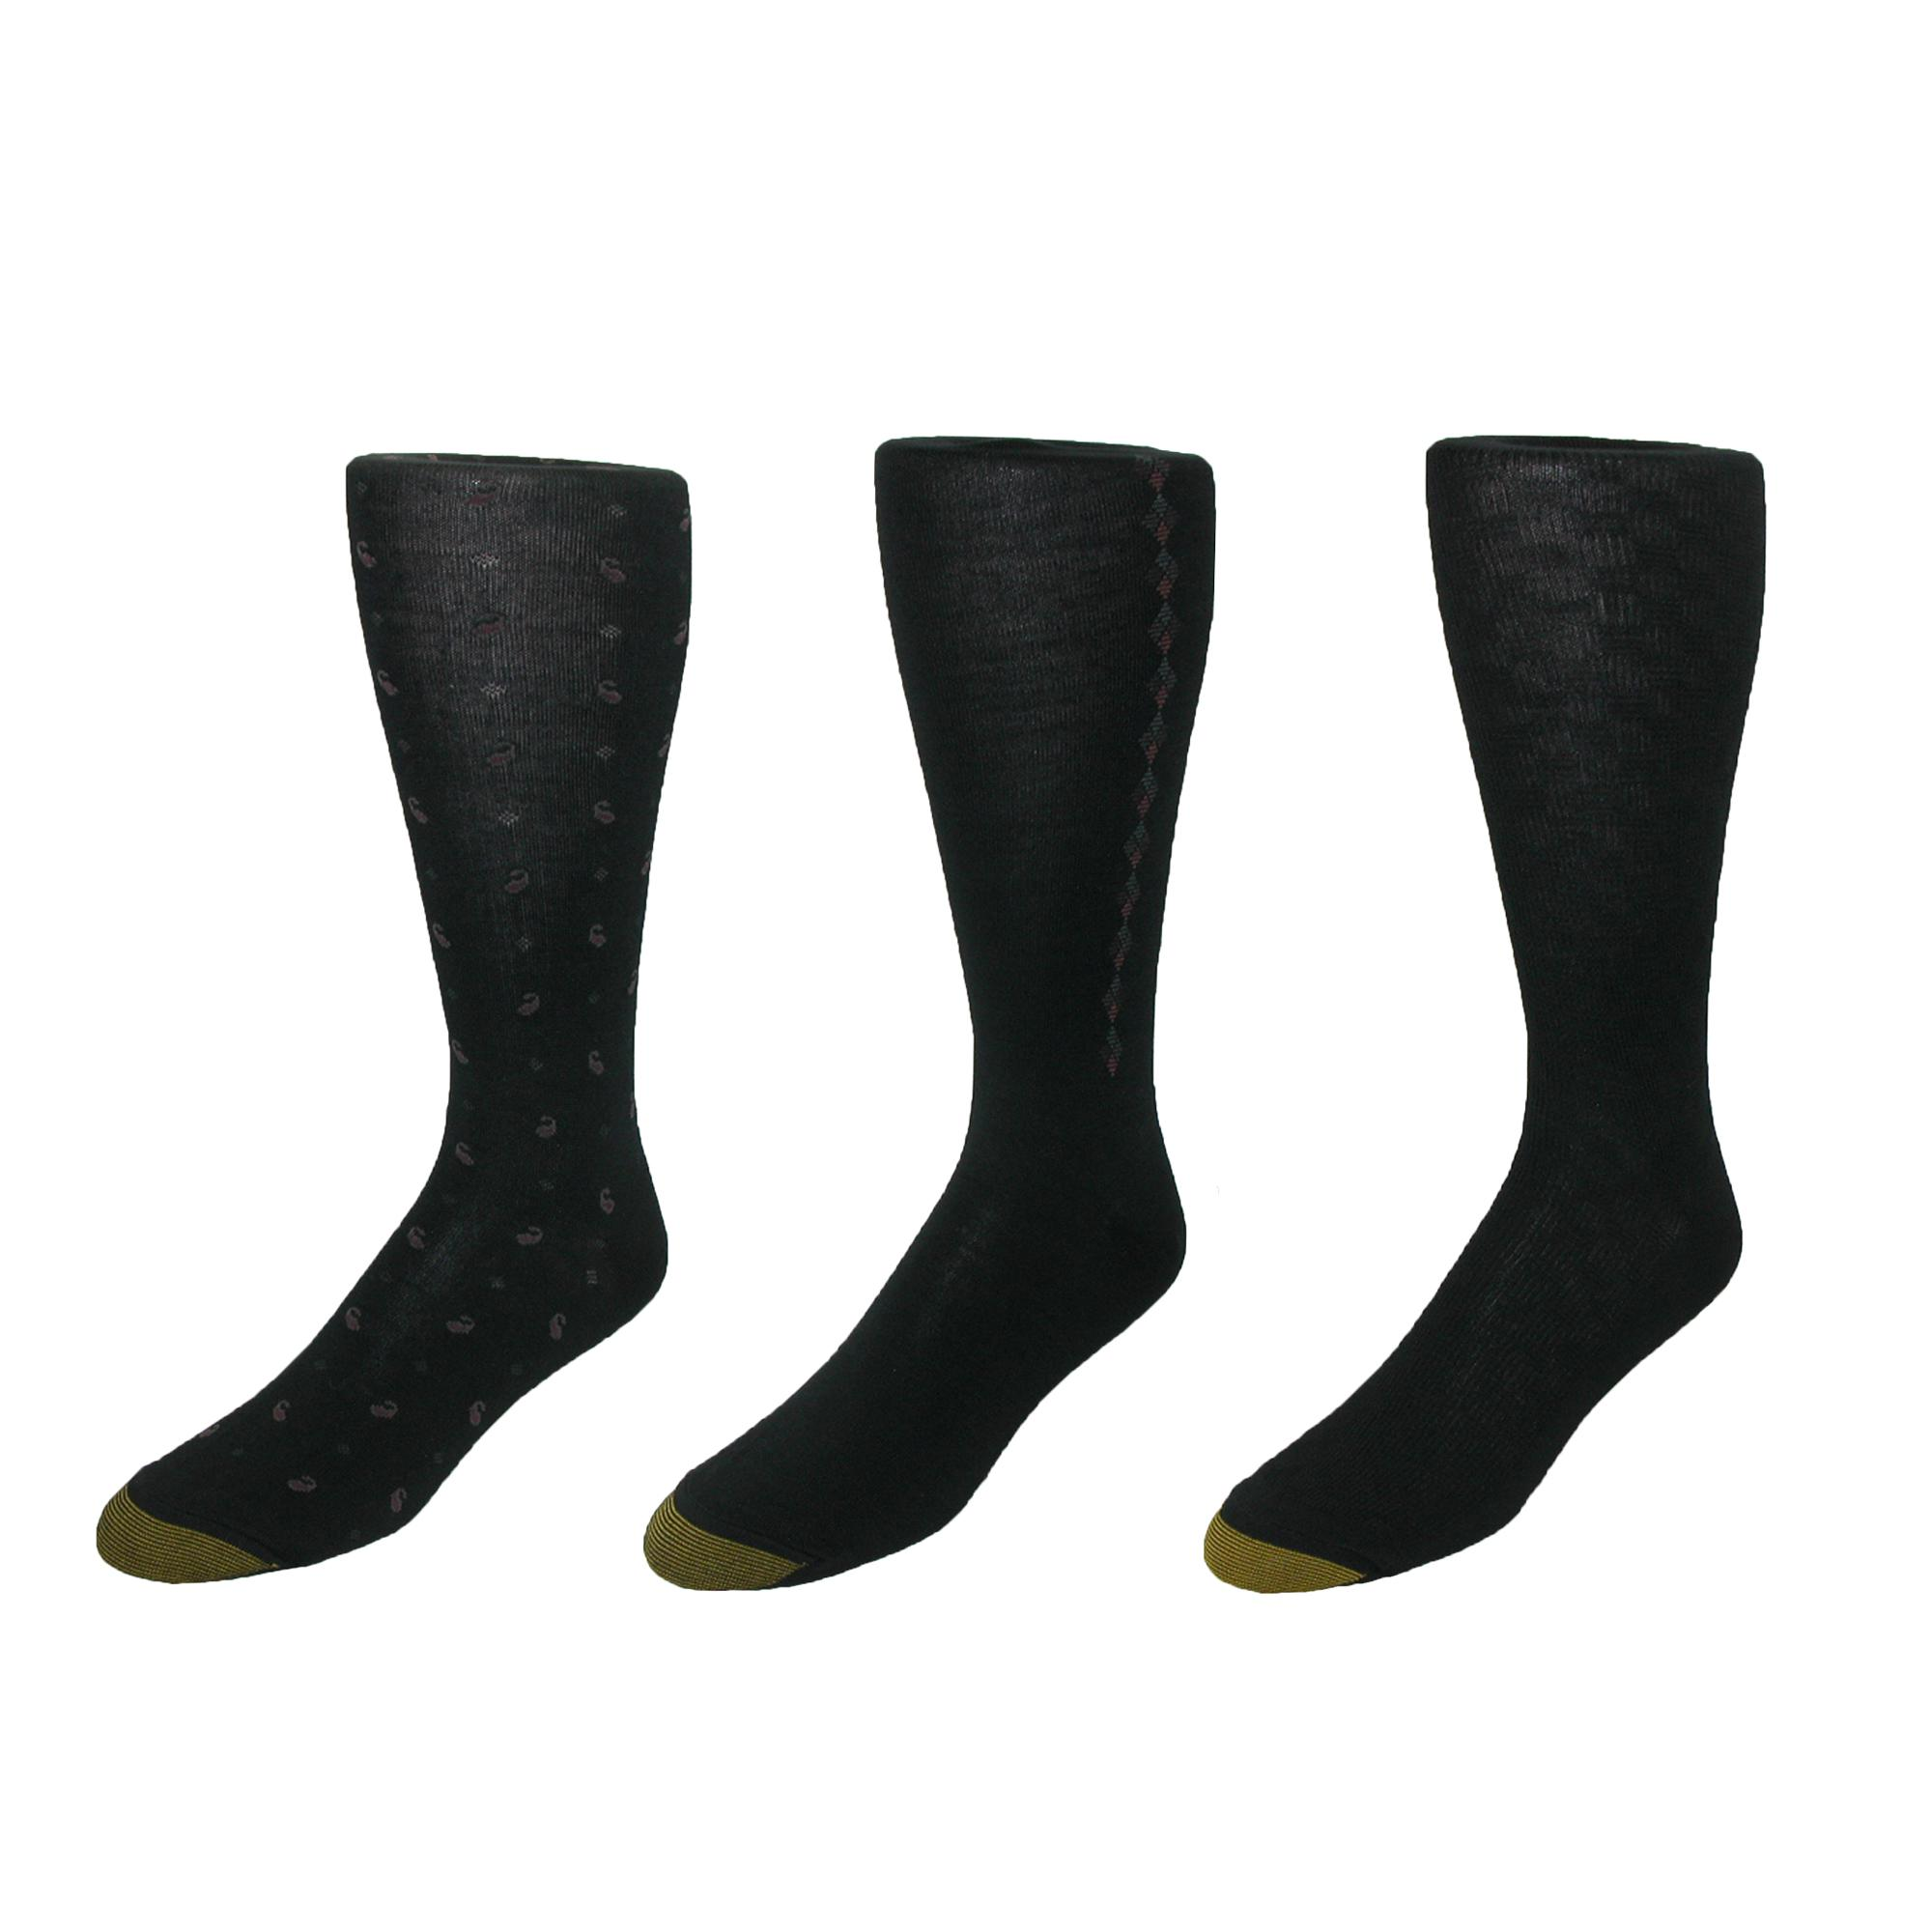 Gold_Toe_Mens_Over_the_Calf_Dress_Sock_Pack_of_3___Shoe_Size_6_